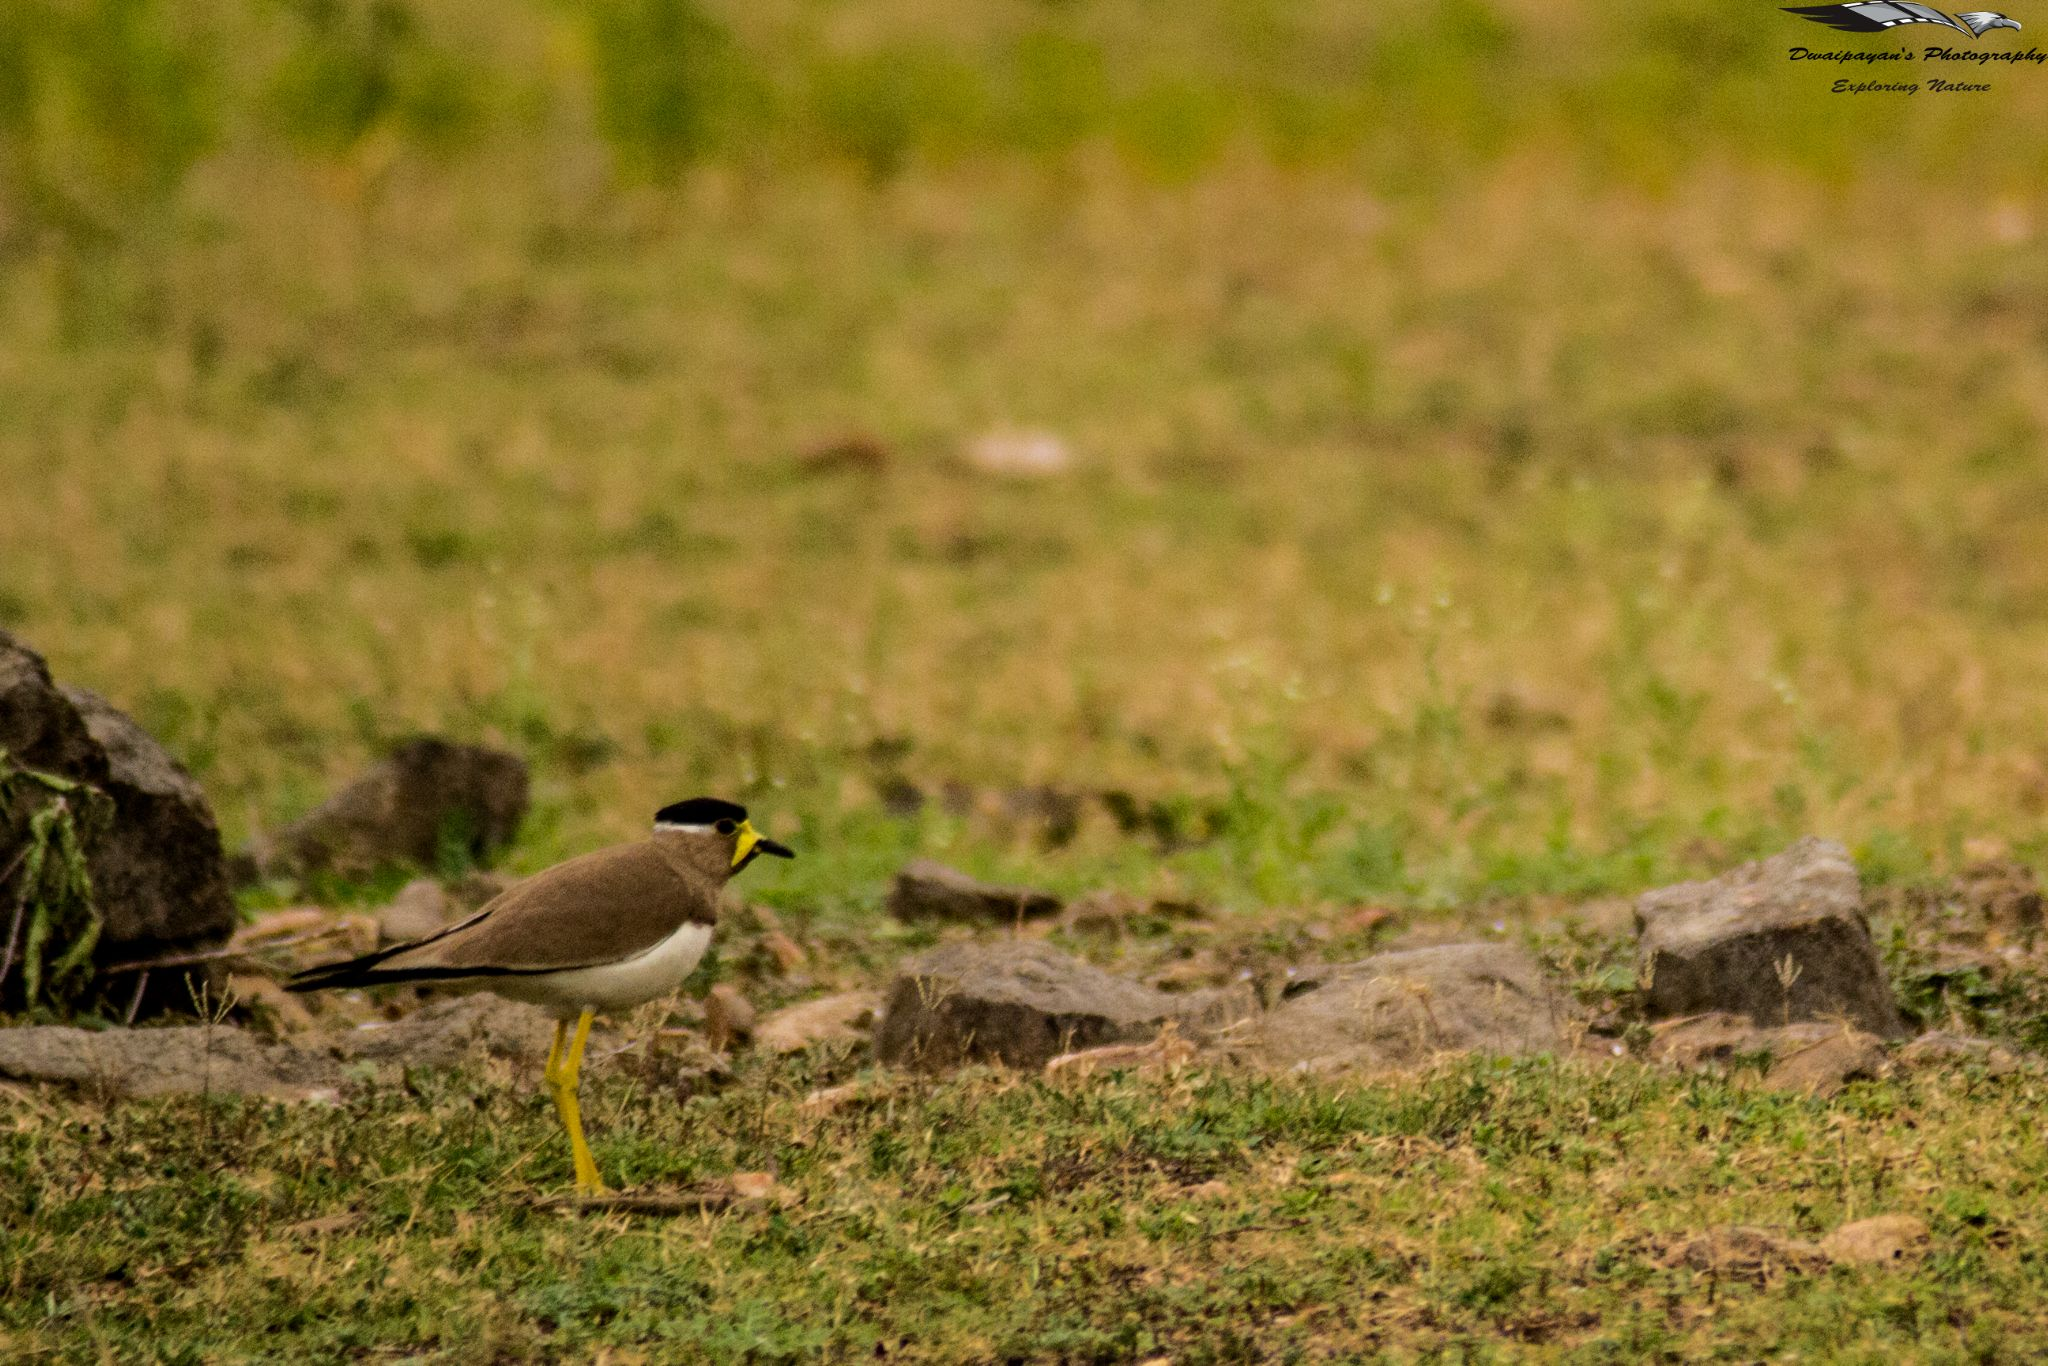 Yellow Wattled Lapwing by Dwaipayan Ghosh